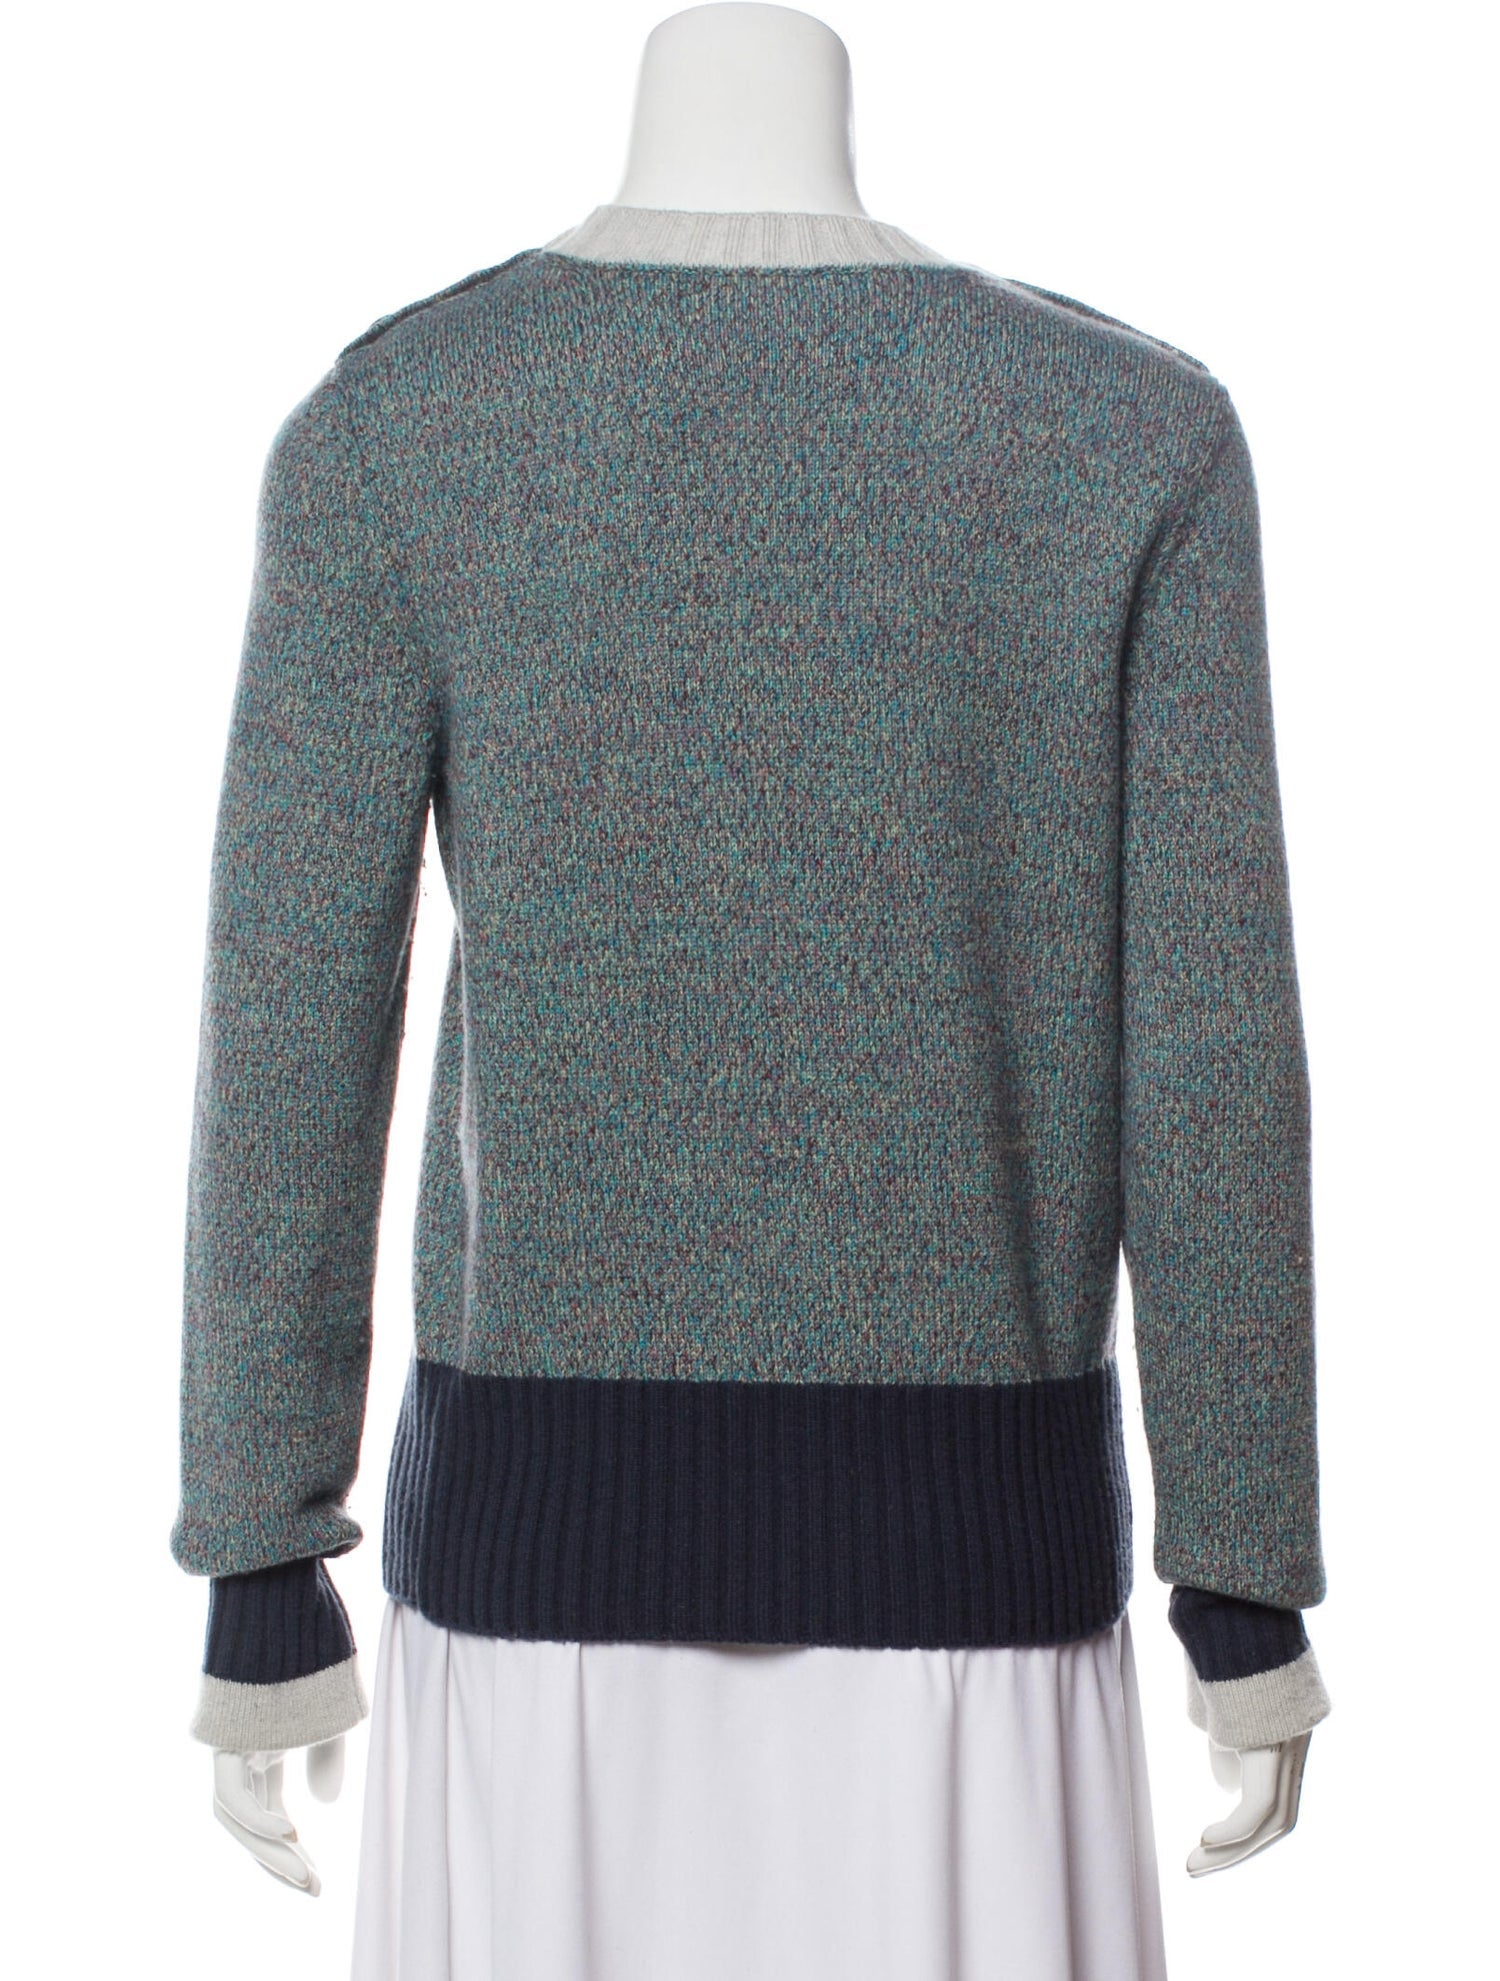 Chanel 2017 Wool Colorblock Sweater Sz 38